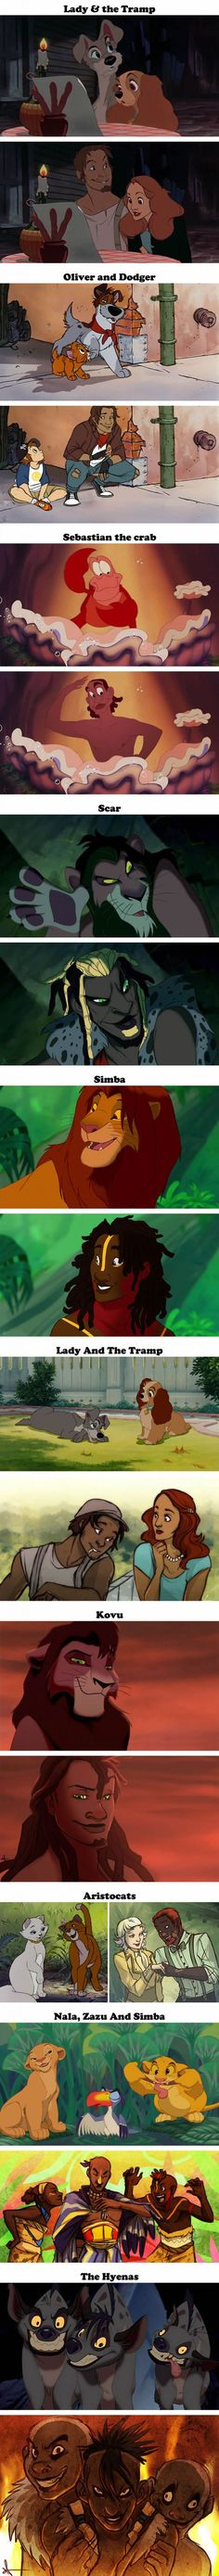 Famous Disney Characters As Ethnically Correct Humans (by pugletto) - 9GAG: